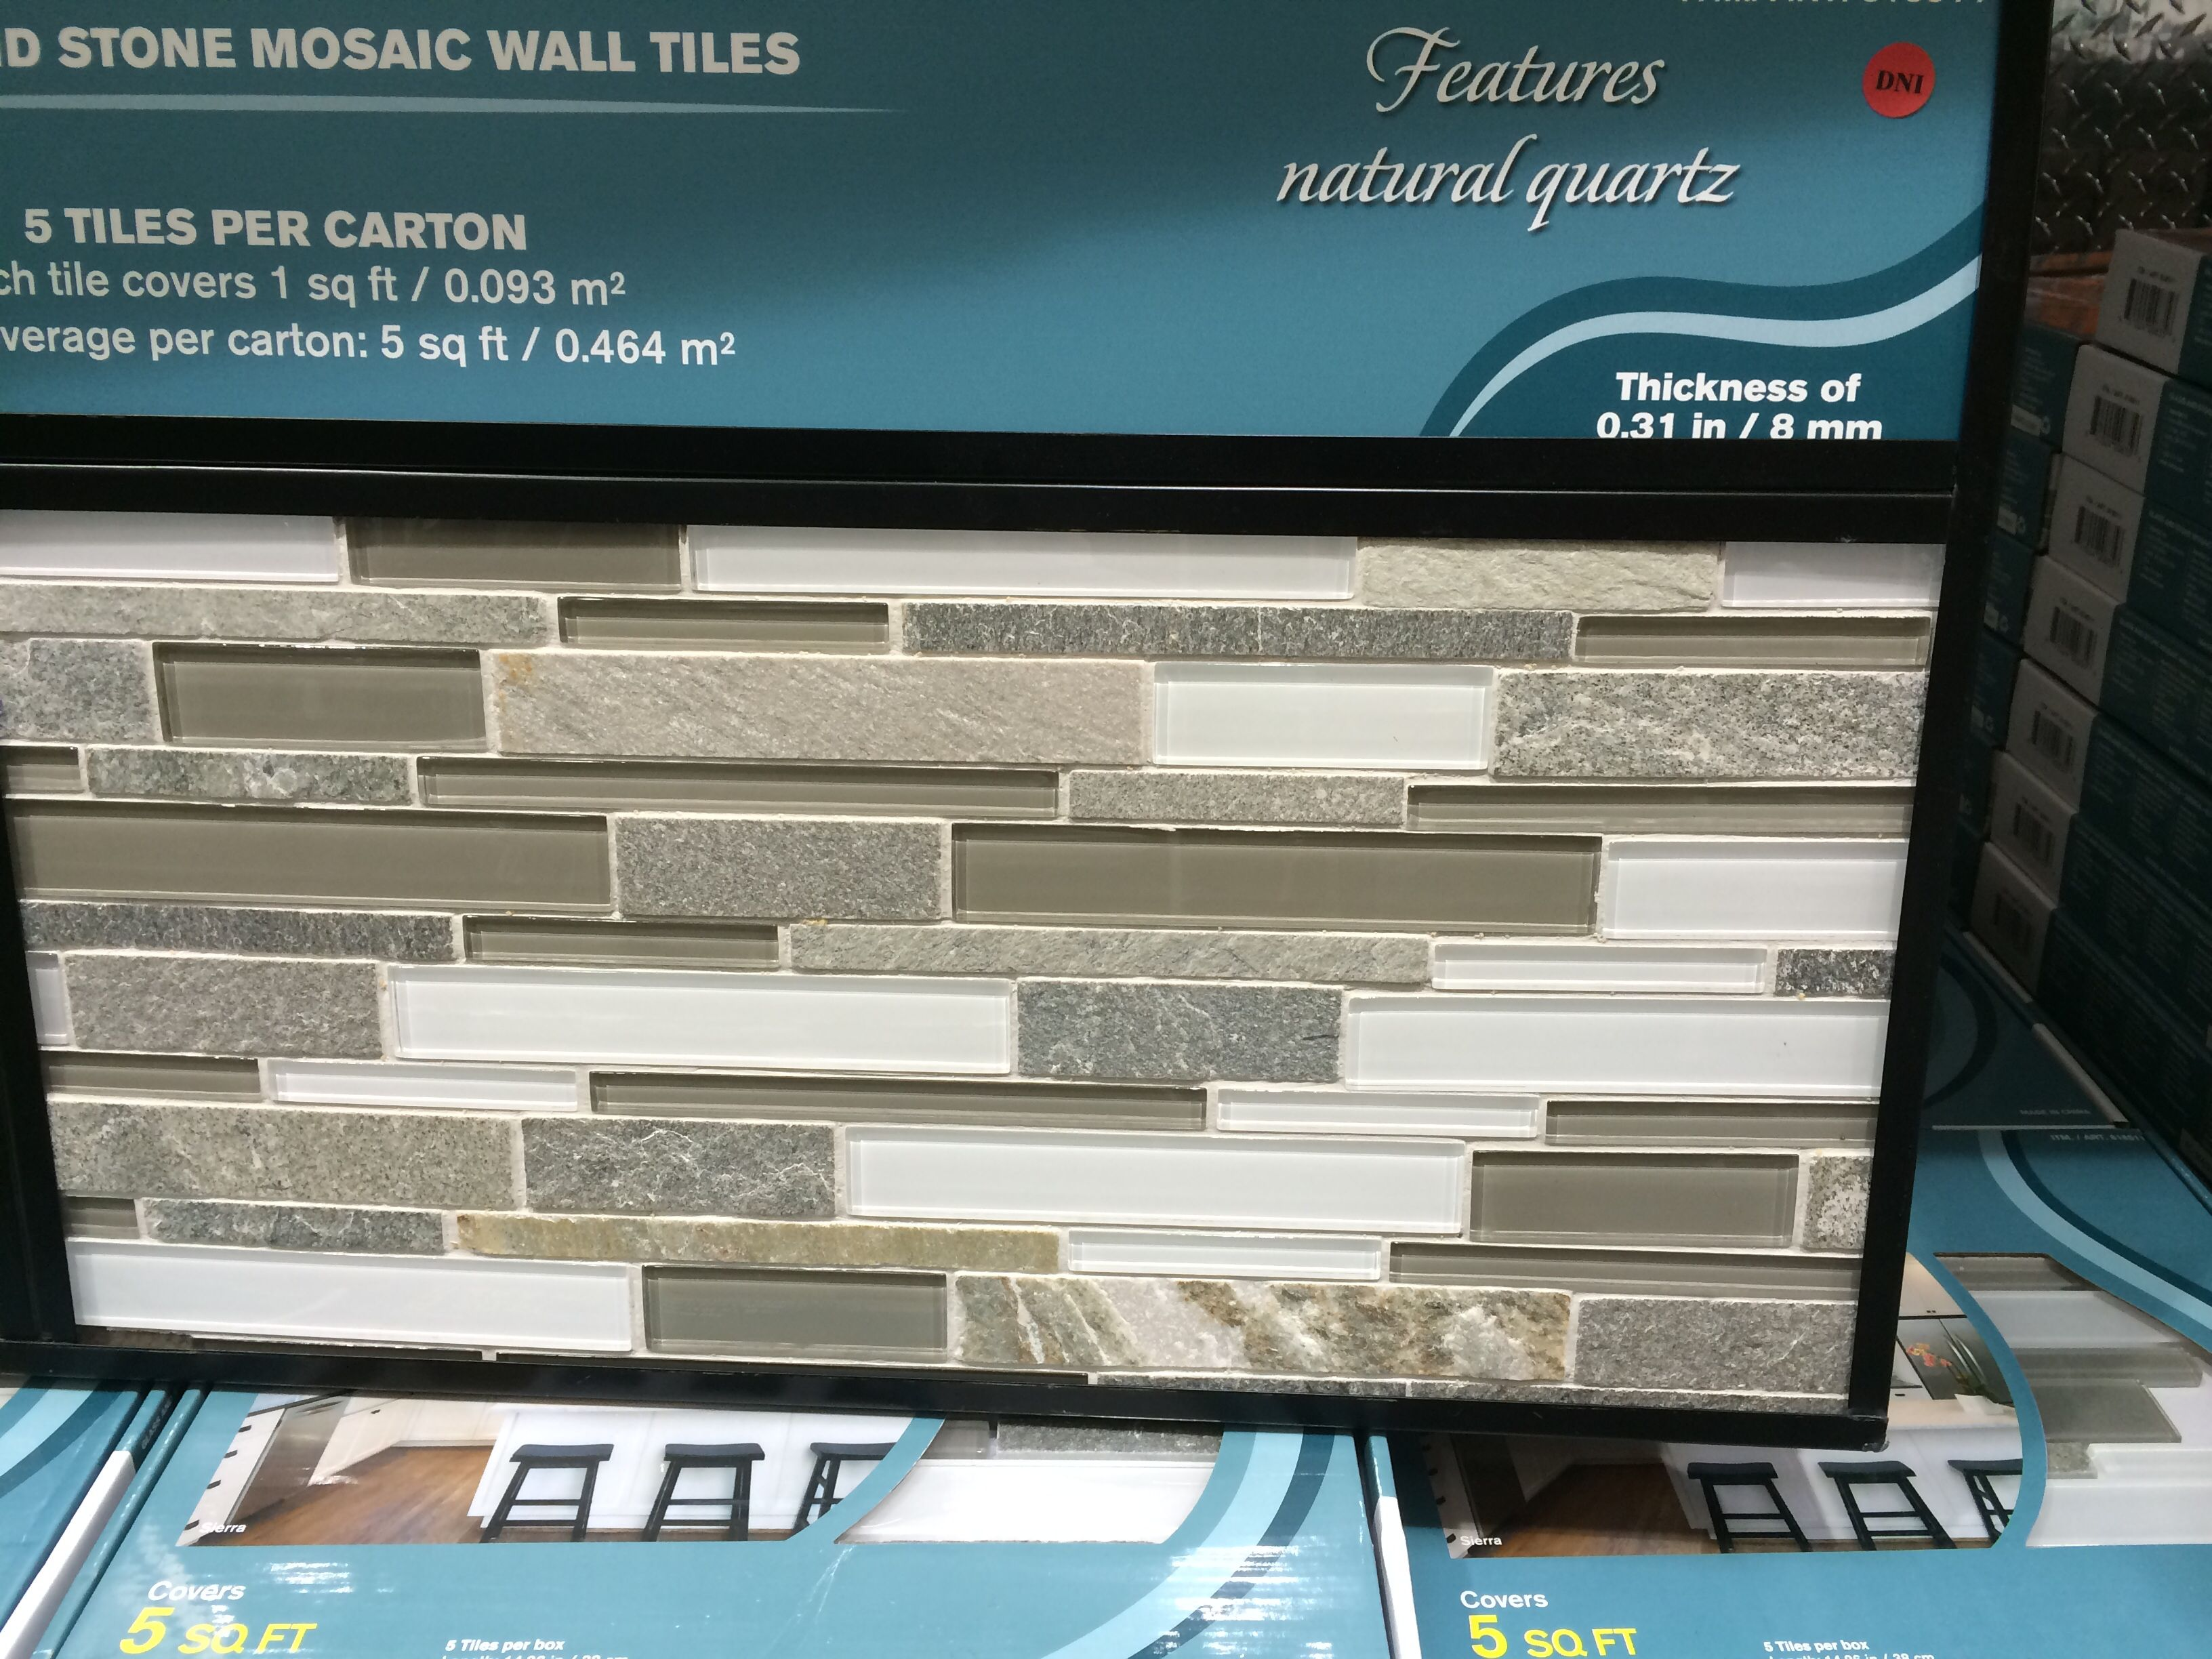 Mosaic Tile Backsplash Costco 5 Square Feet For 23 99 Mosaic Tile Backsplash Stone Mosaic Wall Mosaic Wall Tiles